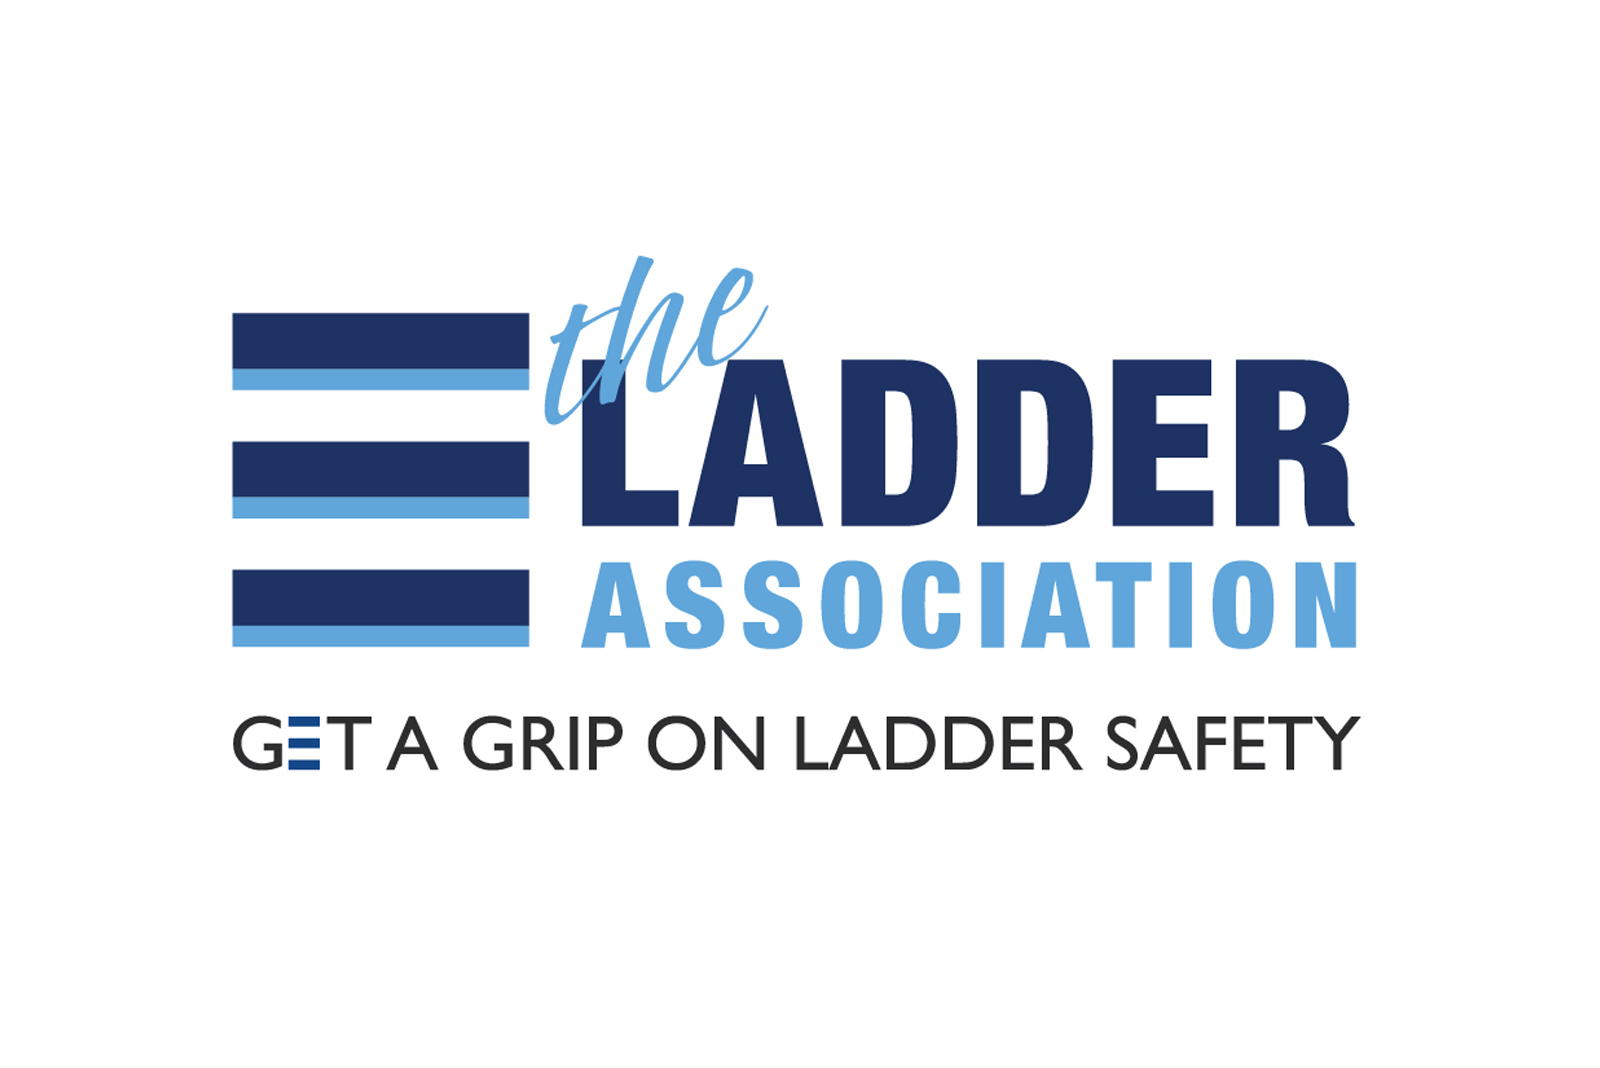 Free ladder safety webinar from Ladder Association and HSE